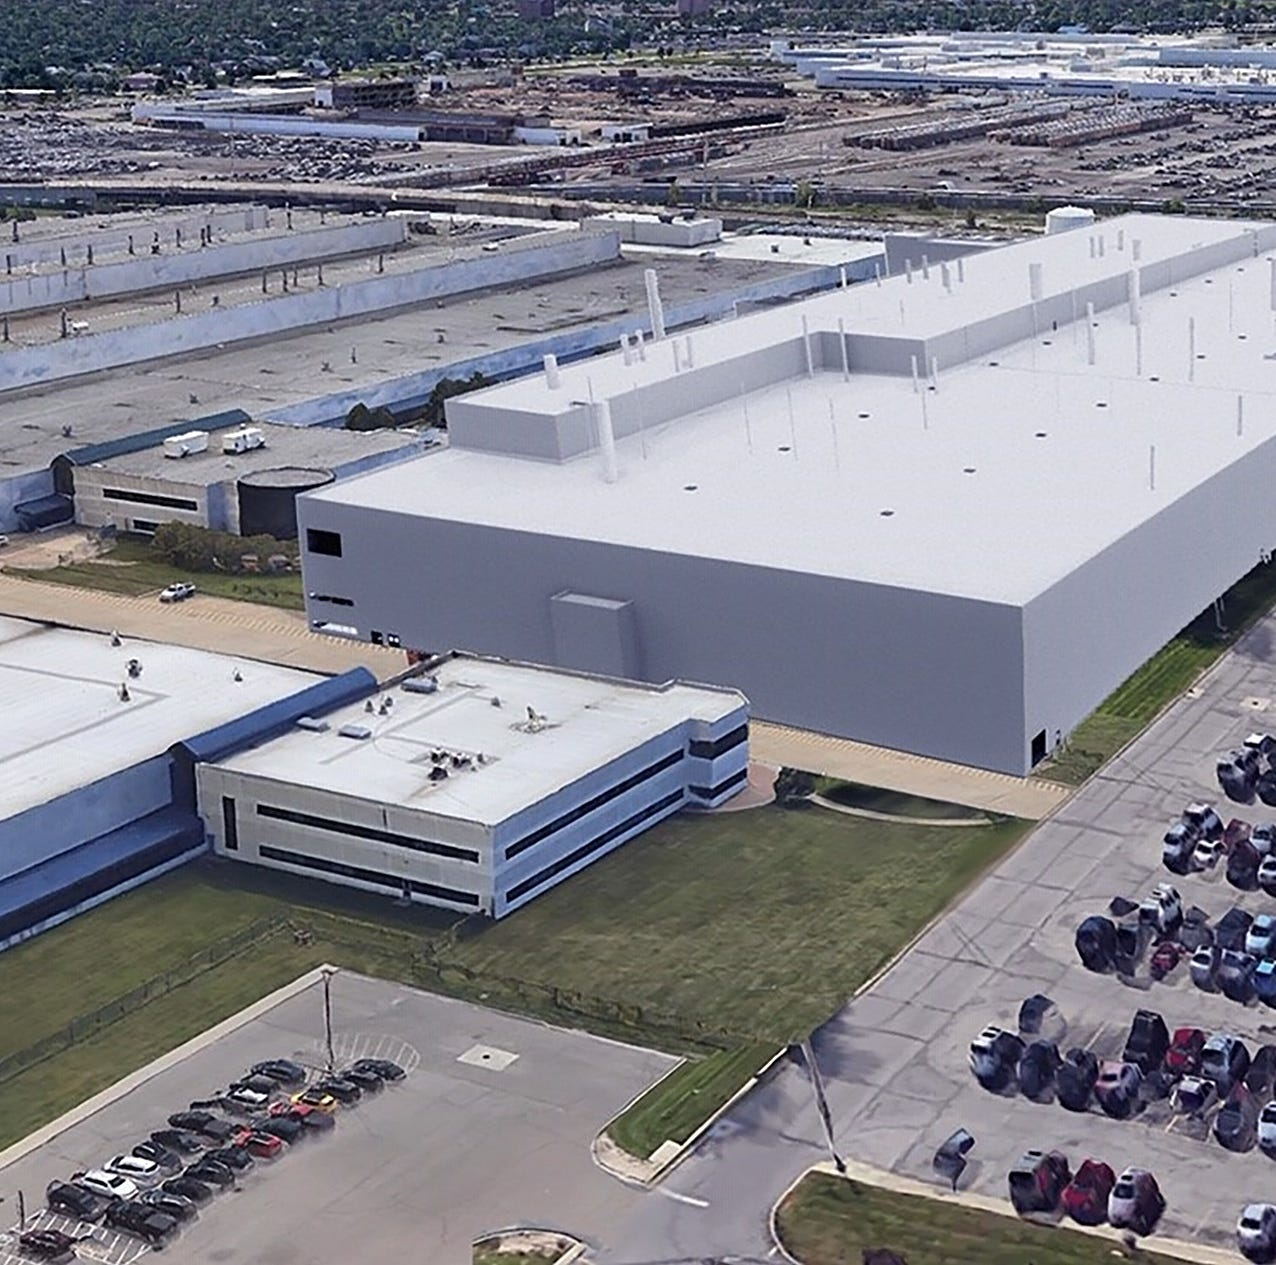 As deadline nears, Detroit Jeep plant hopes hinge on Morouns